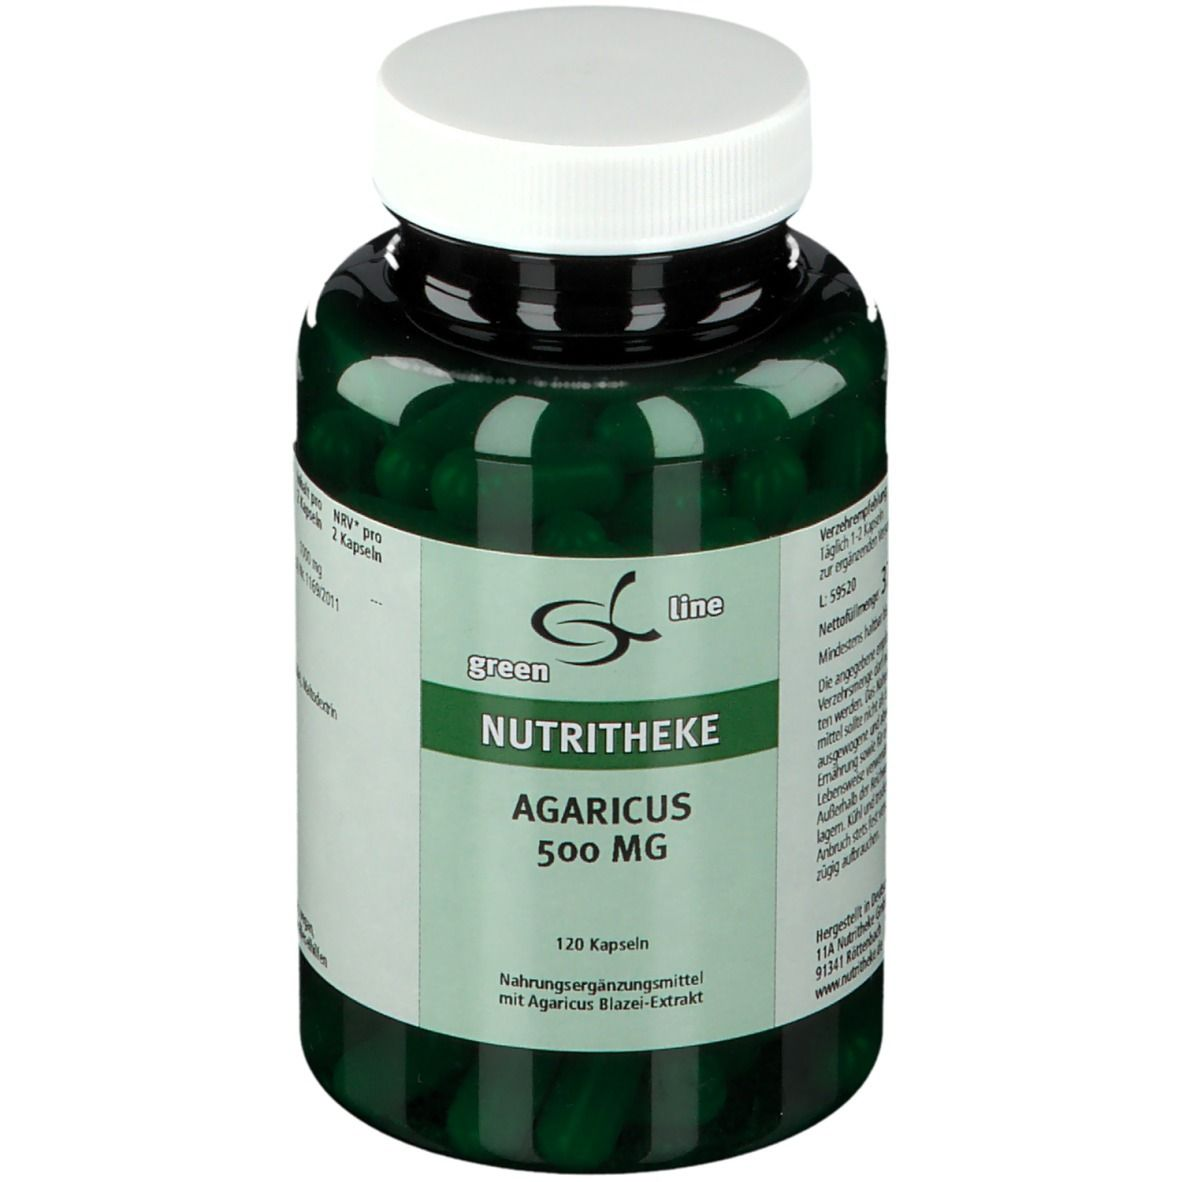 Image of green line AGARICUS 500 mg